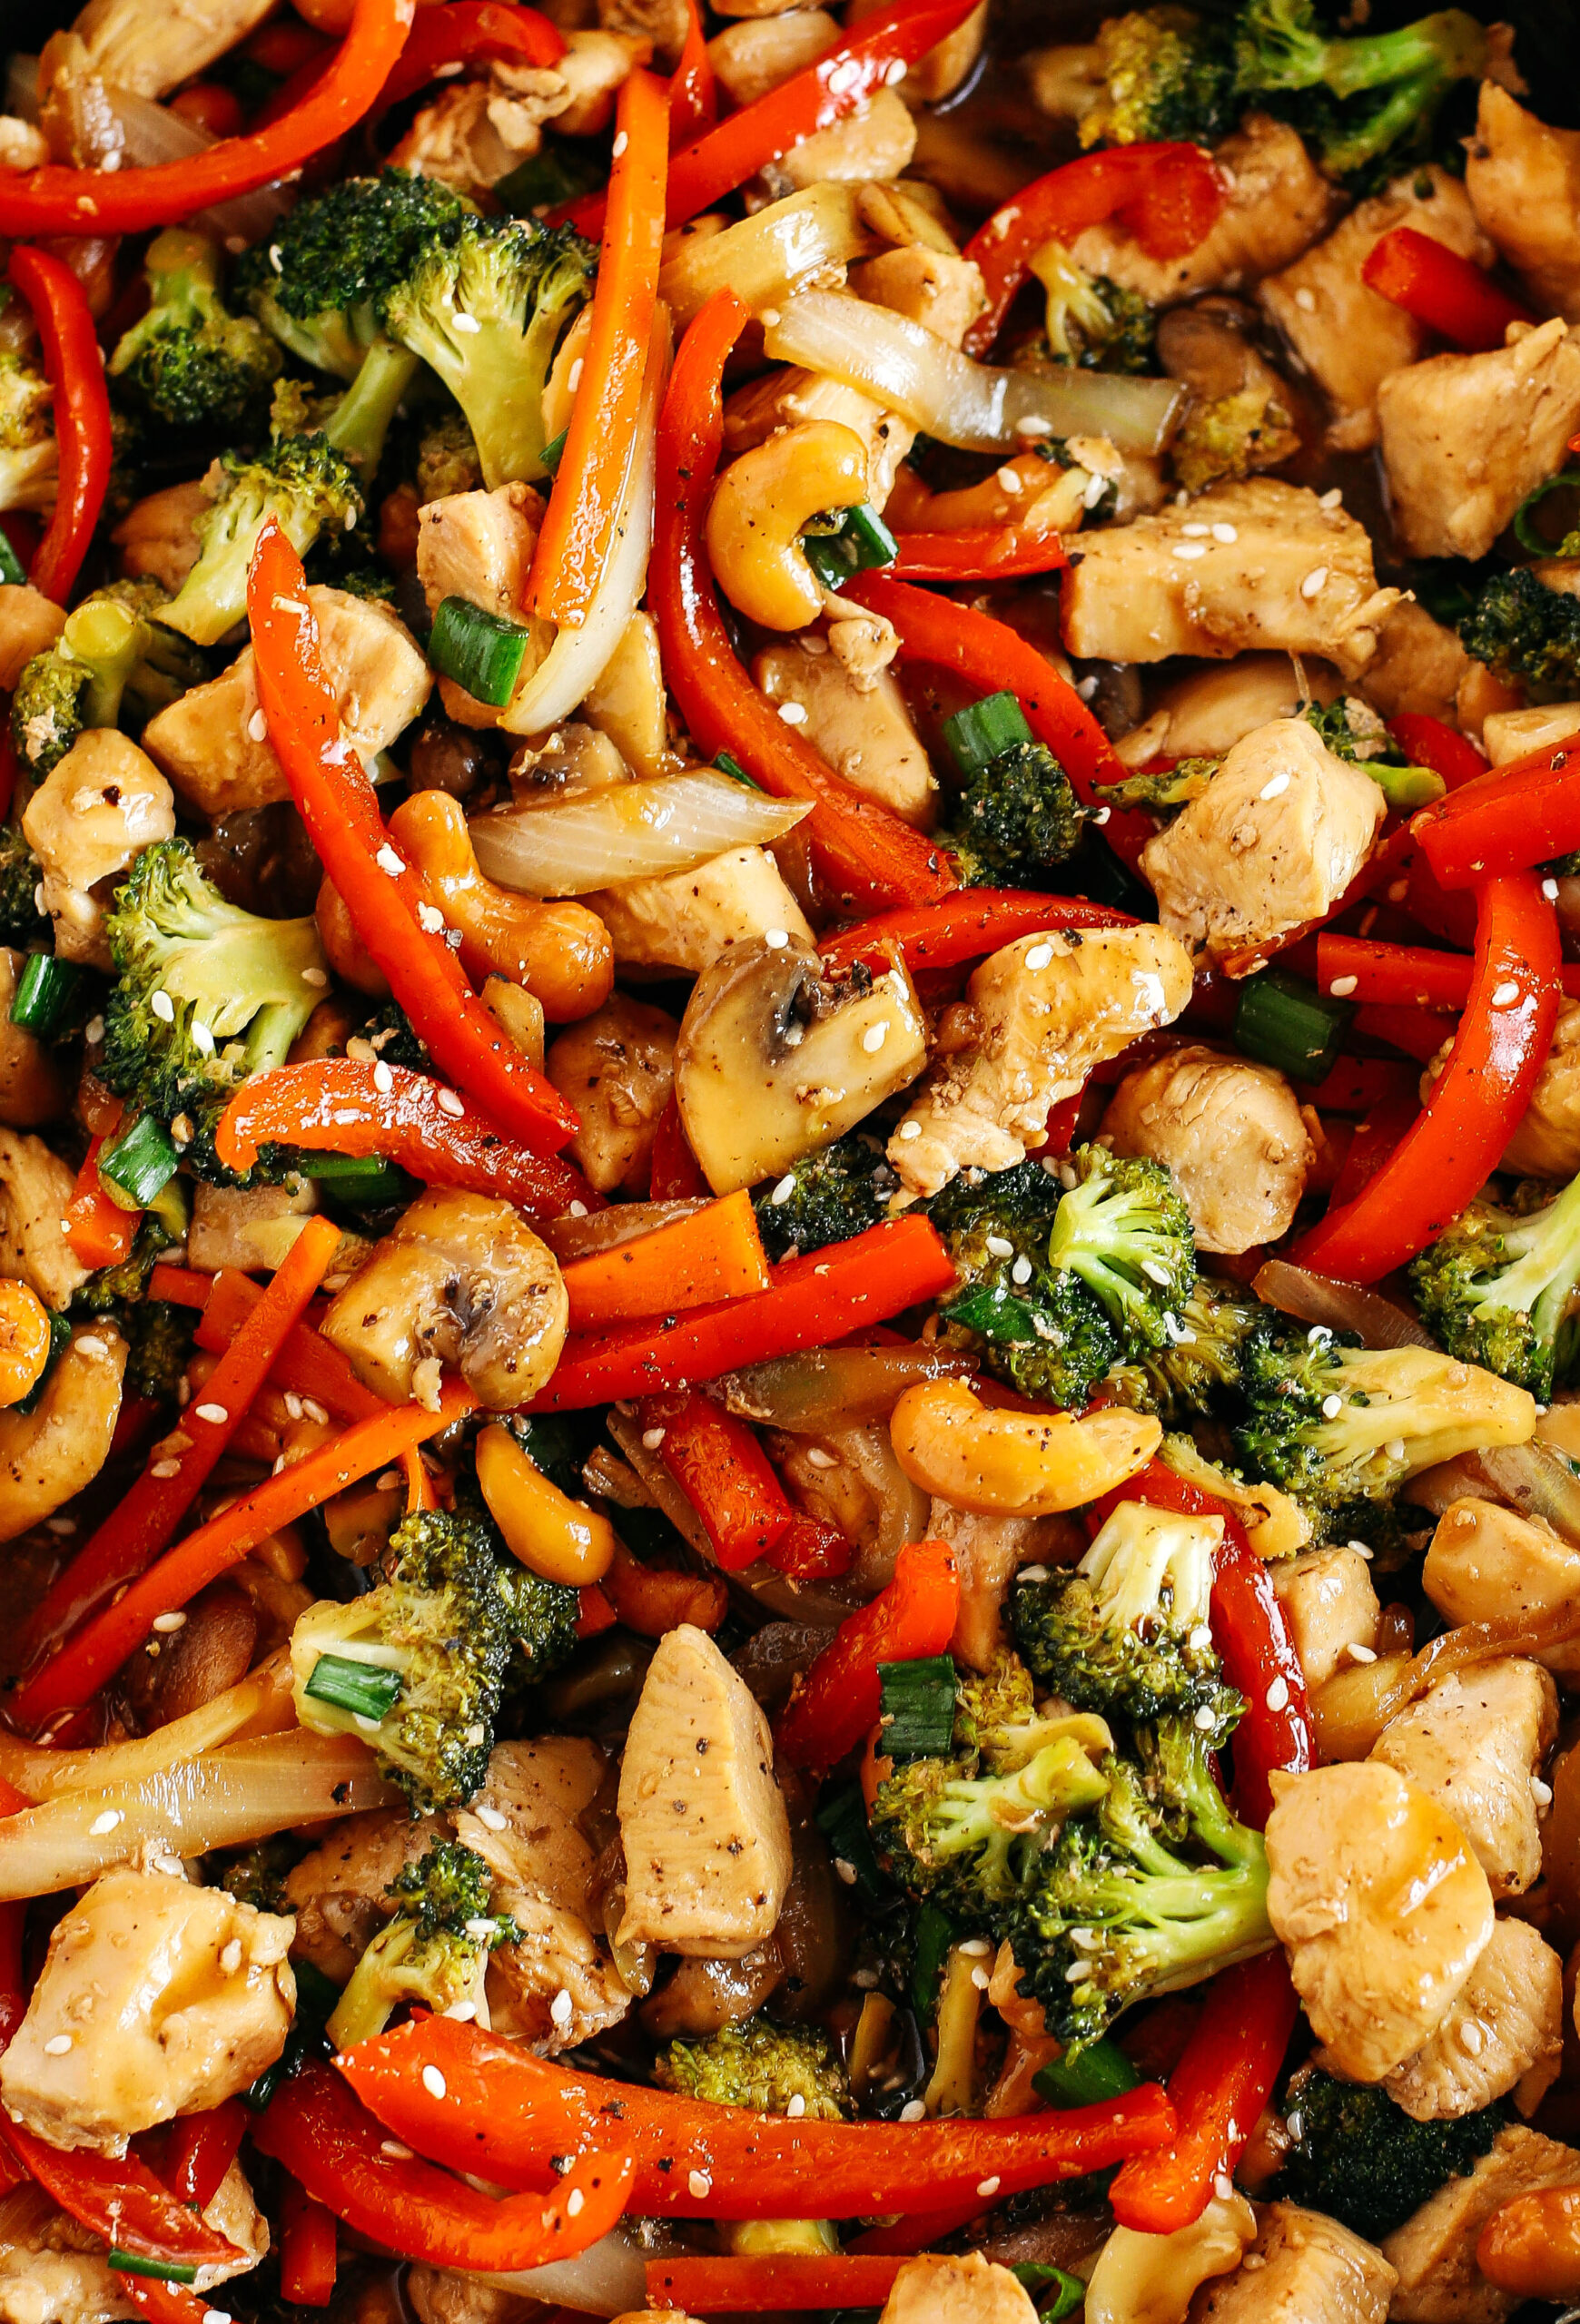 This Teriyaki Chicken Stir Fry is the perfect weeknight meal that is quick and easy to make, full of fresh veggies and tossed together in a delicious homemade teriyaki sauce!